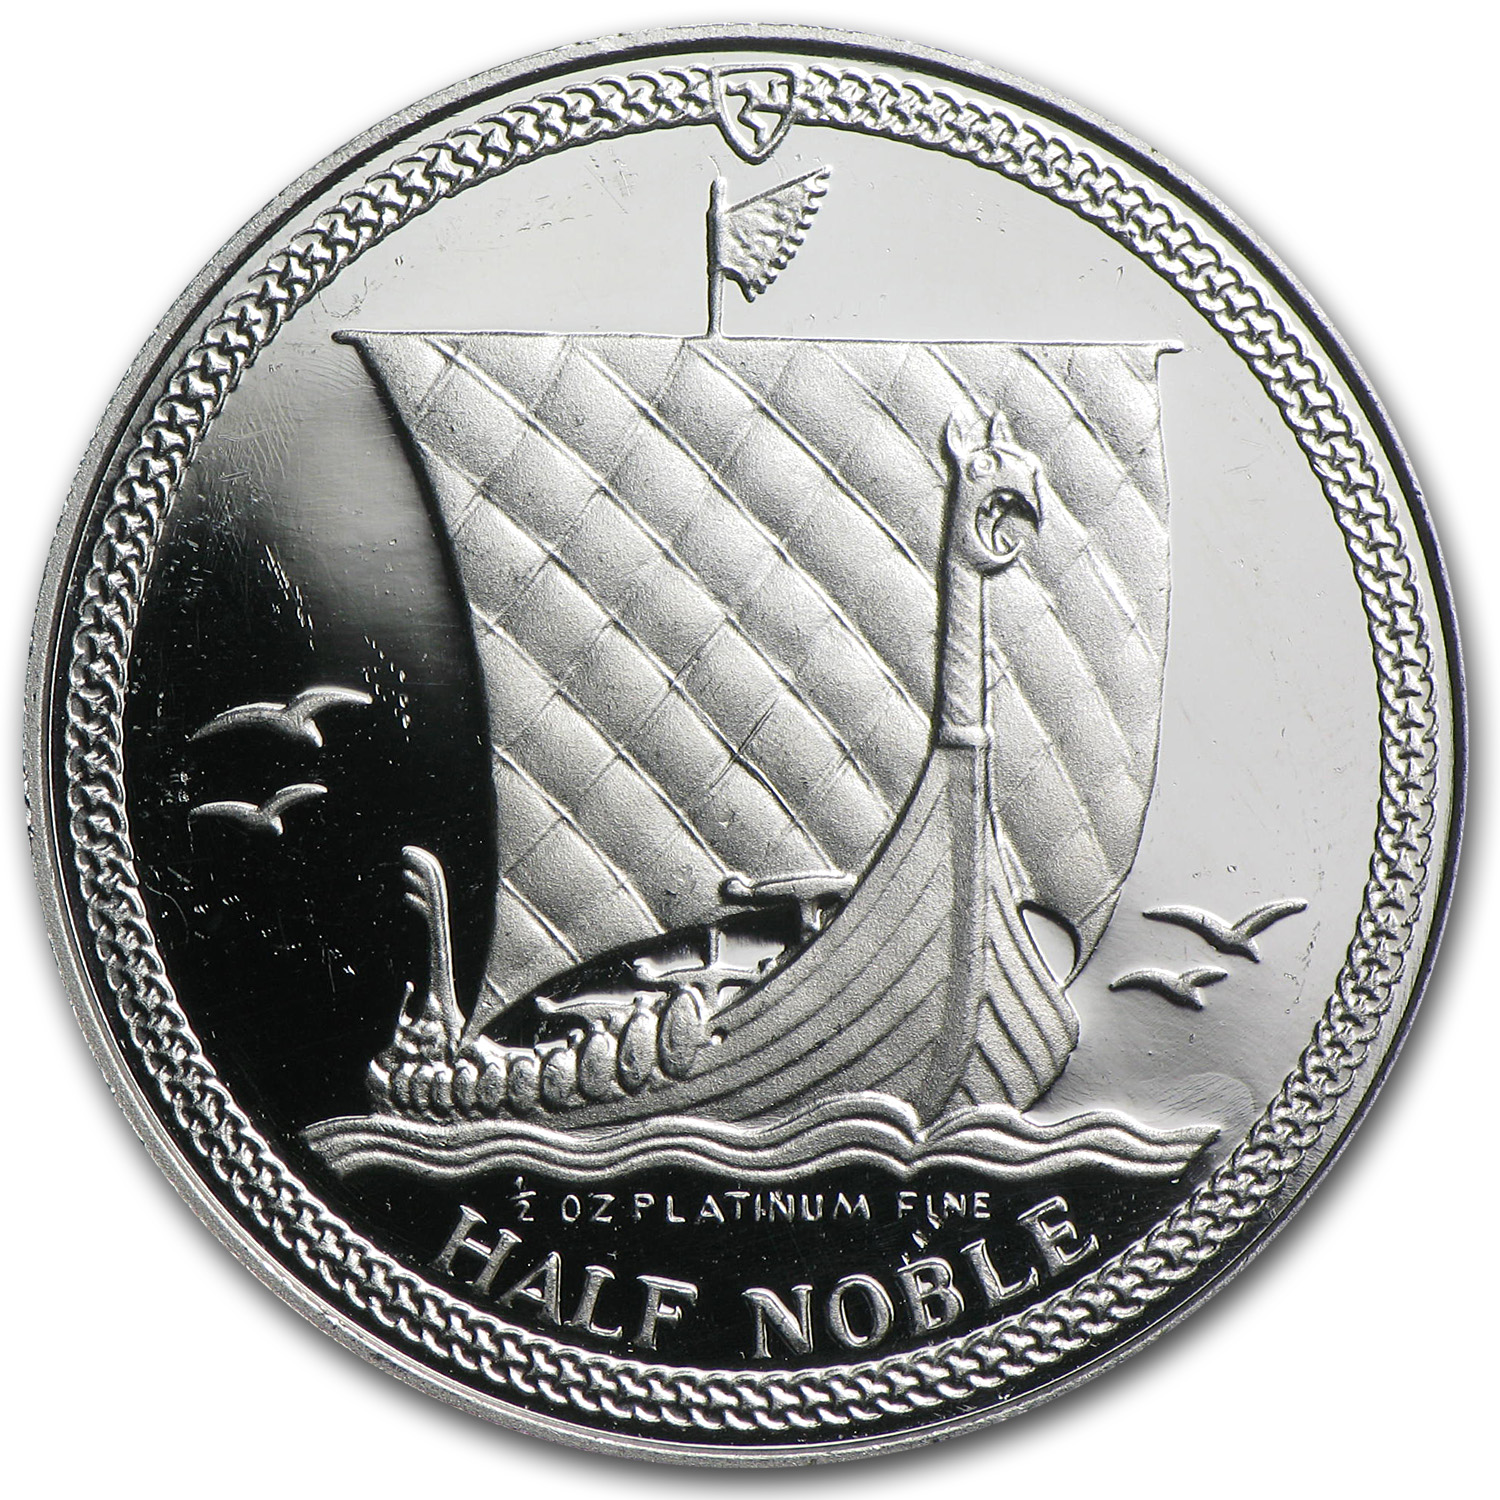 Isle of Man 1/2 oz Platinum Noble Proof